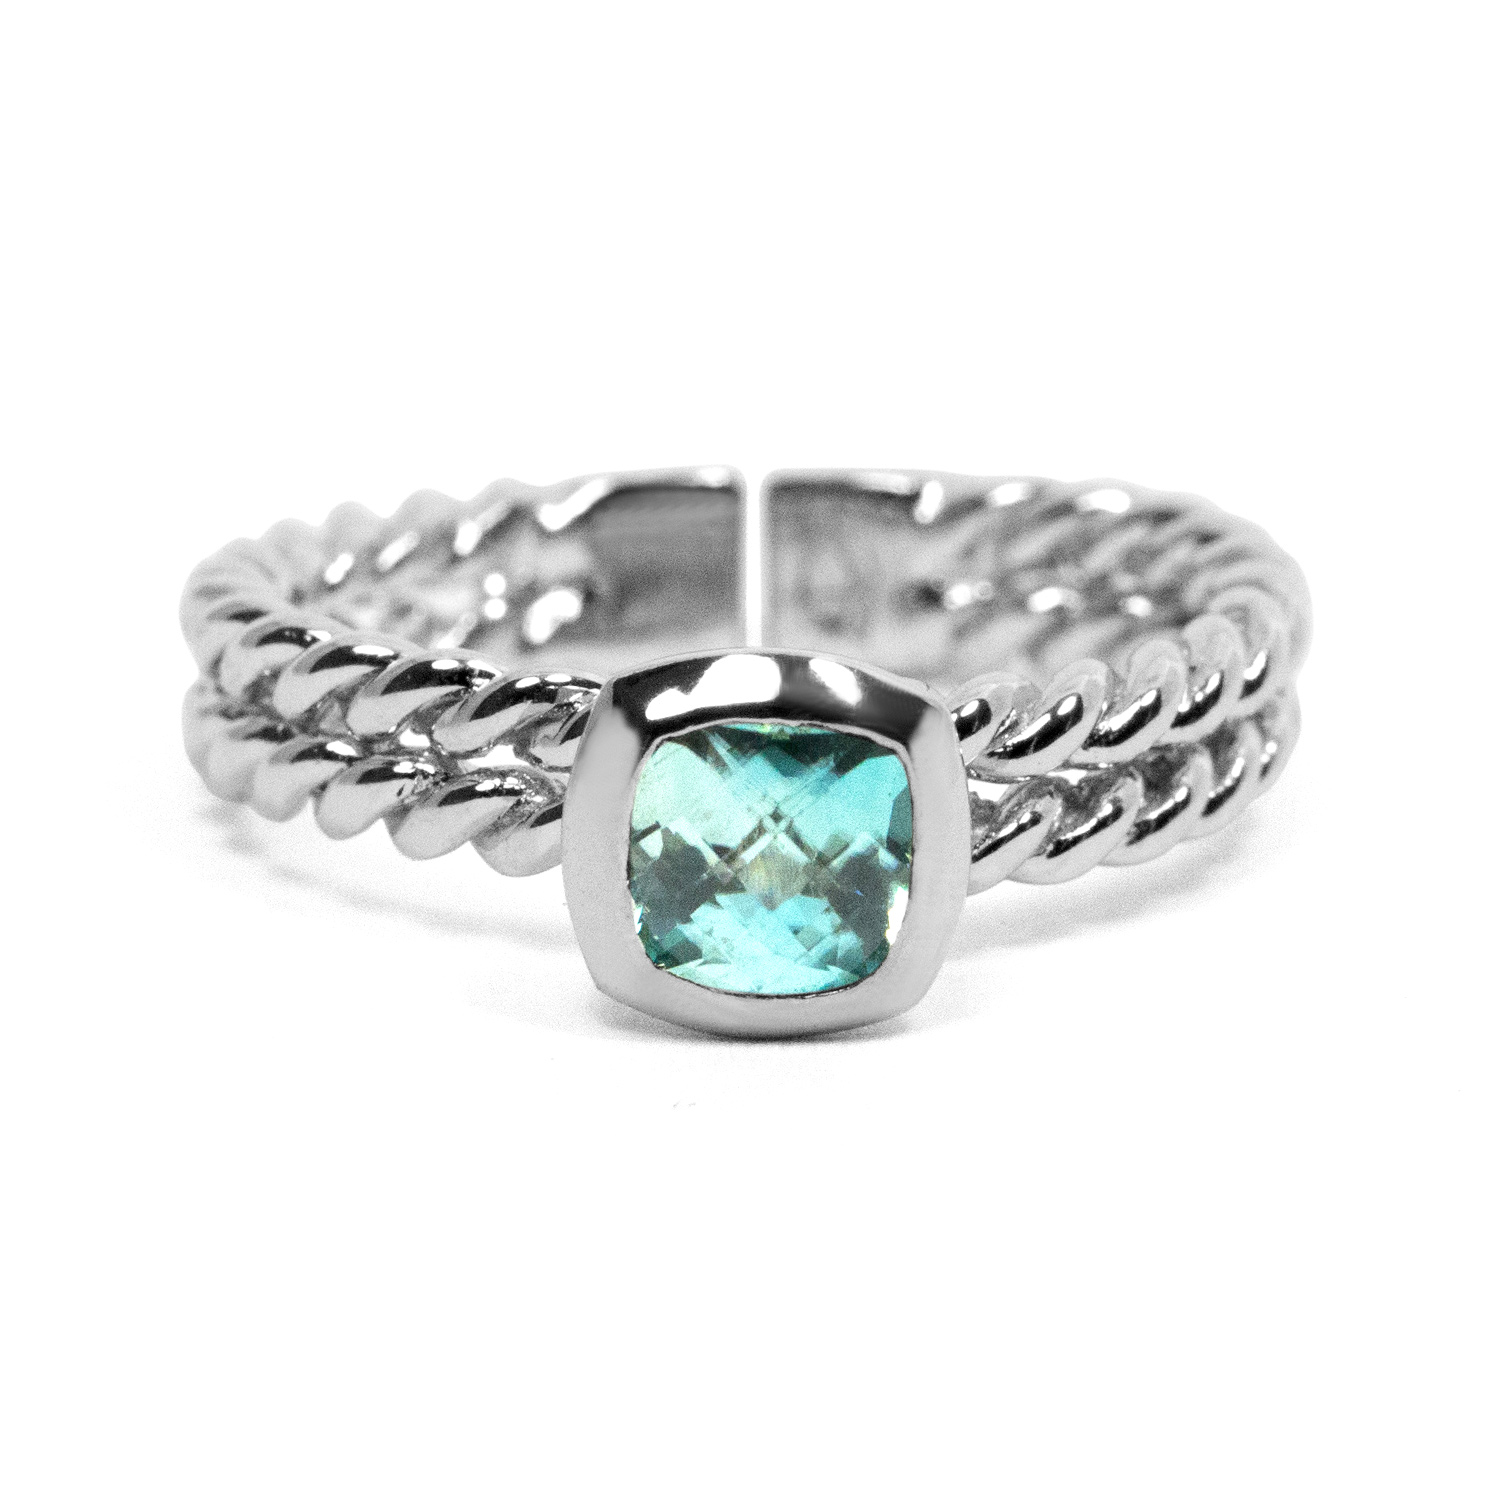 alebrusan-gemstone-rings-square-zircon-1500px-web